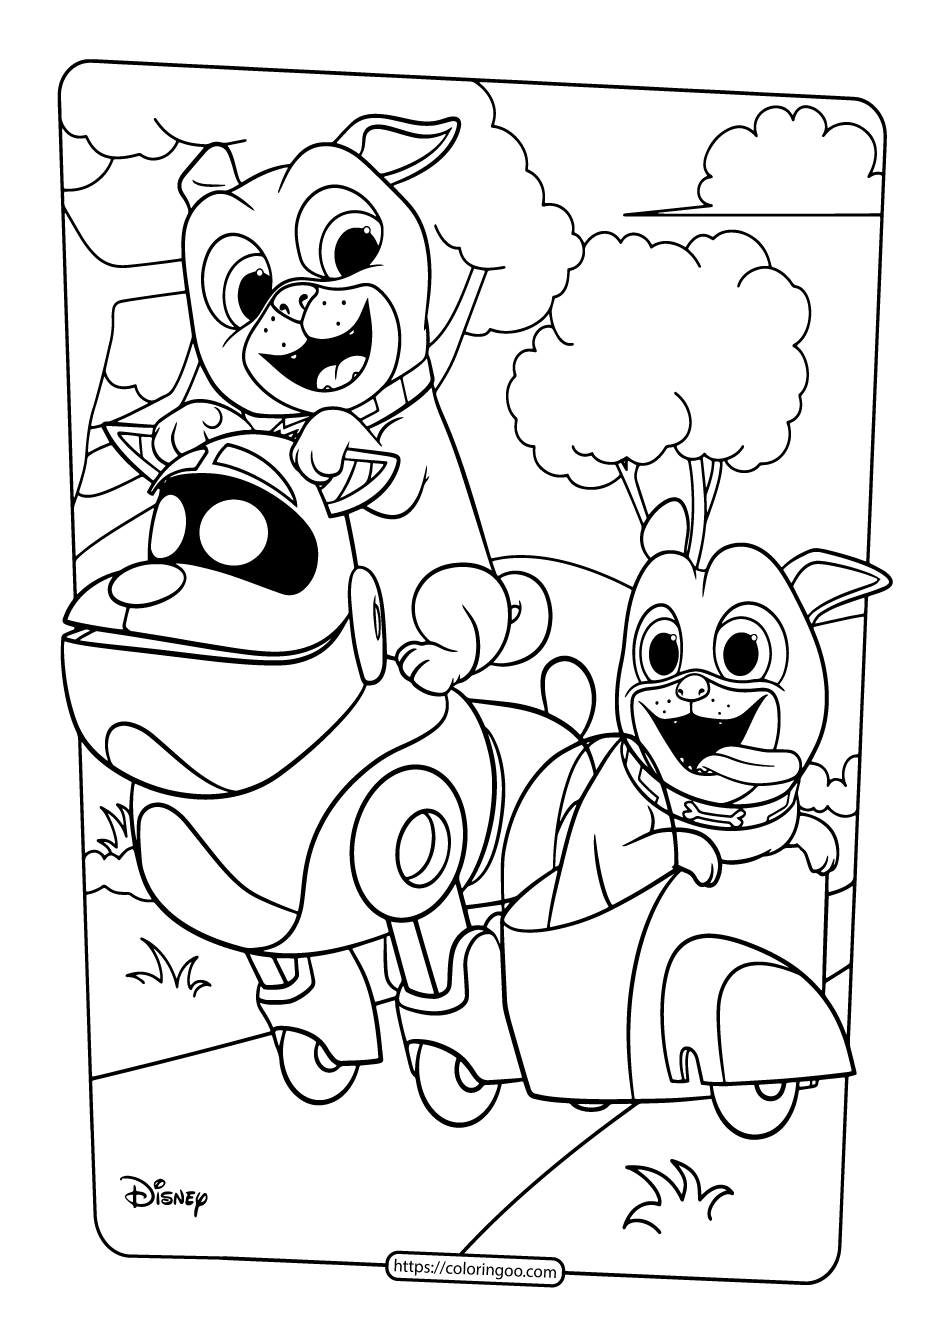 Printable Puppy Dog Pals Coloring Book Pages 02